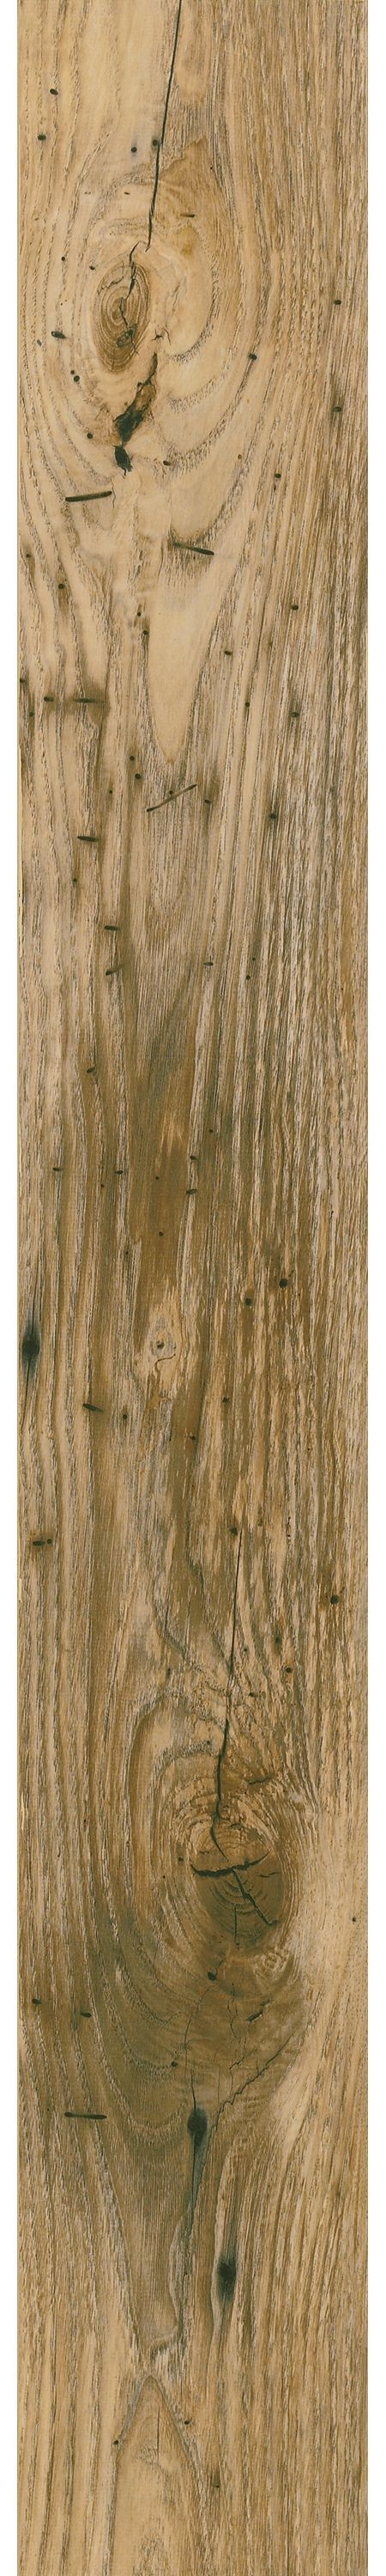 "Armstrong Reclaimed American Chestnut Aged Chestnut L6604, 12mm Laminate Wood Look, Low Gloss, 6.49""x47.83"", Install Method:  Lock & Fold"